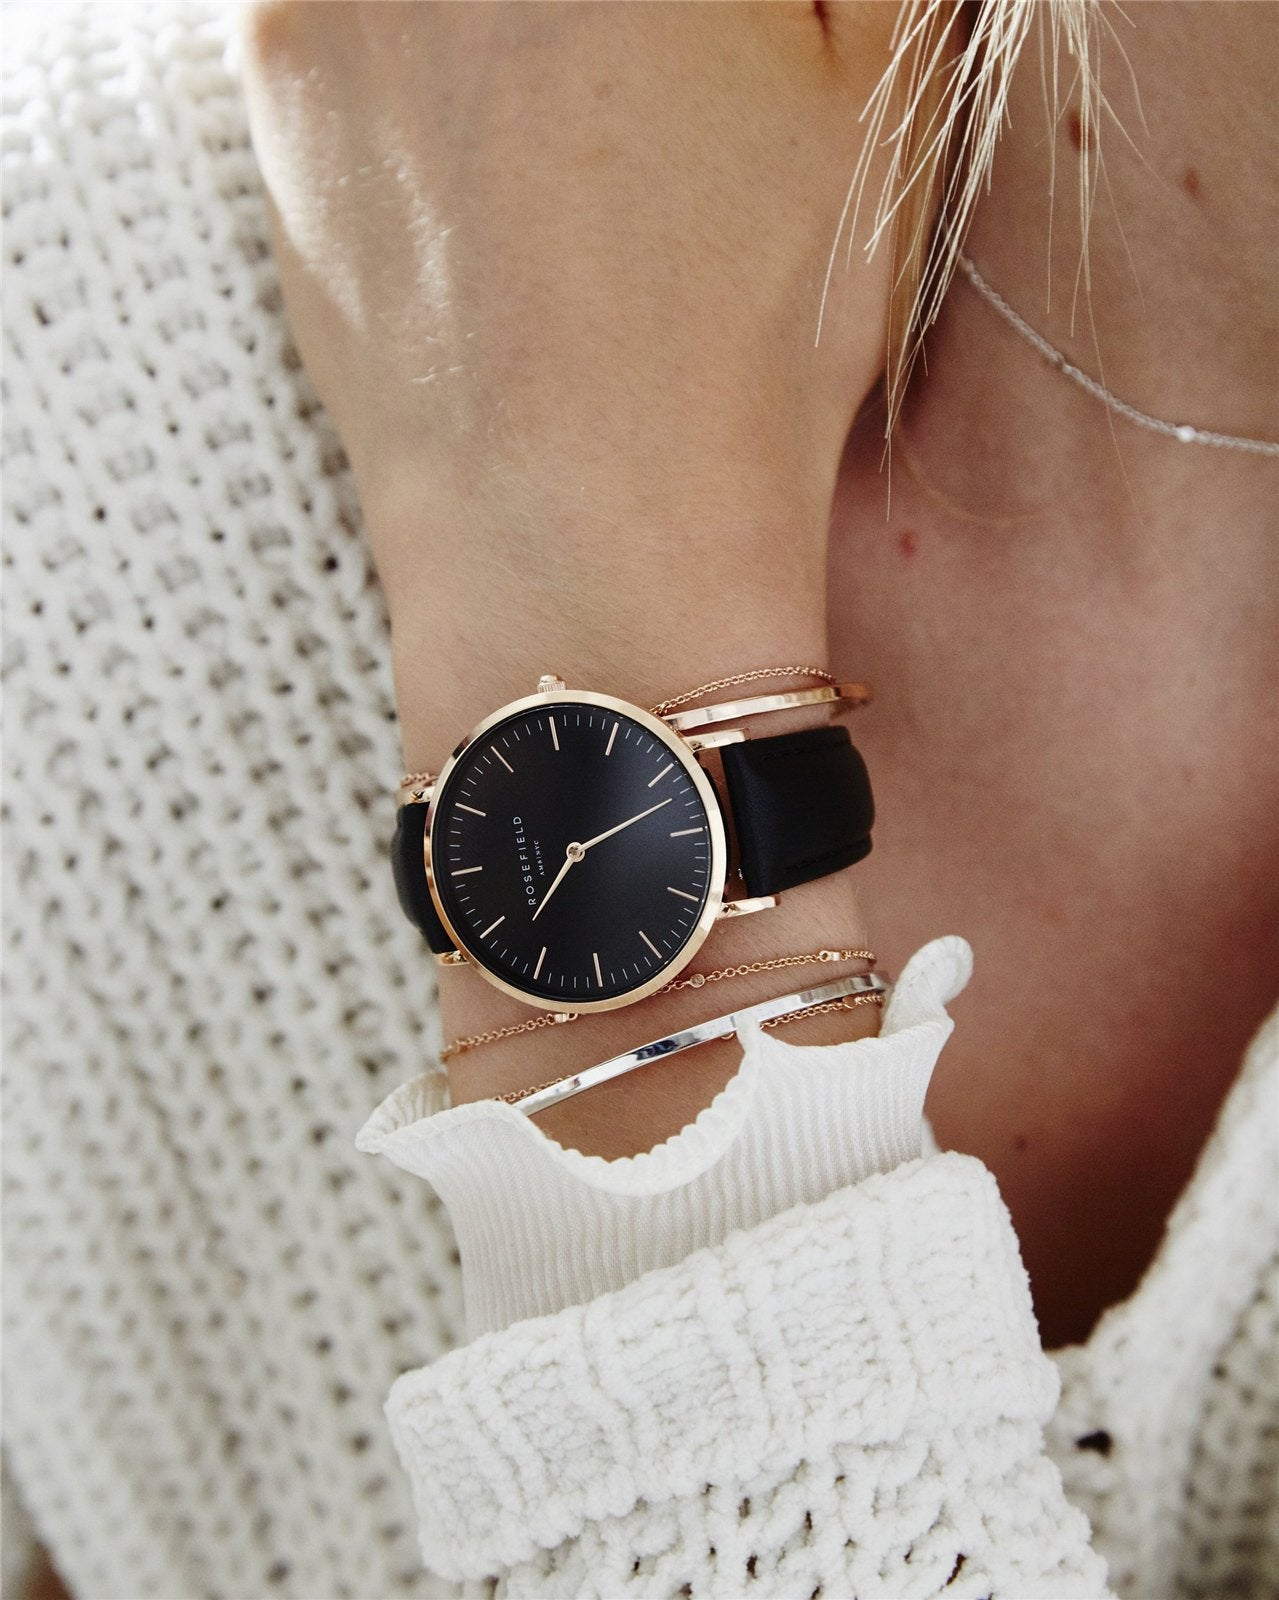 The Bowery Black Black Rose Gold Rosefield Official